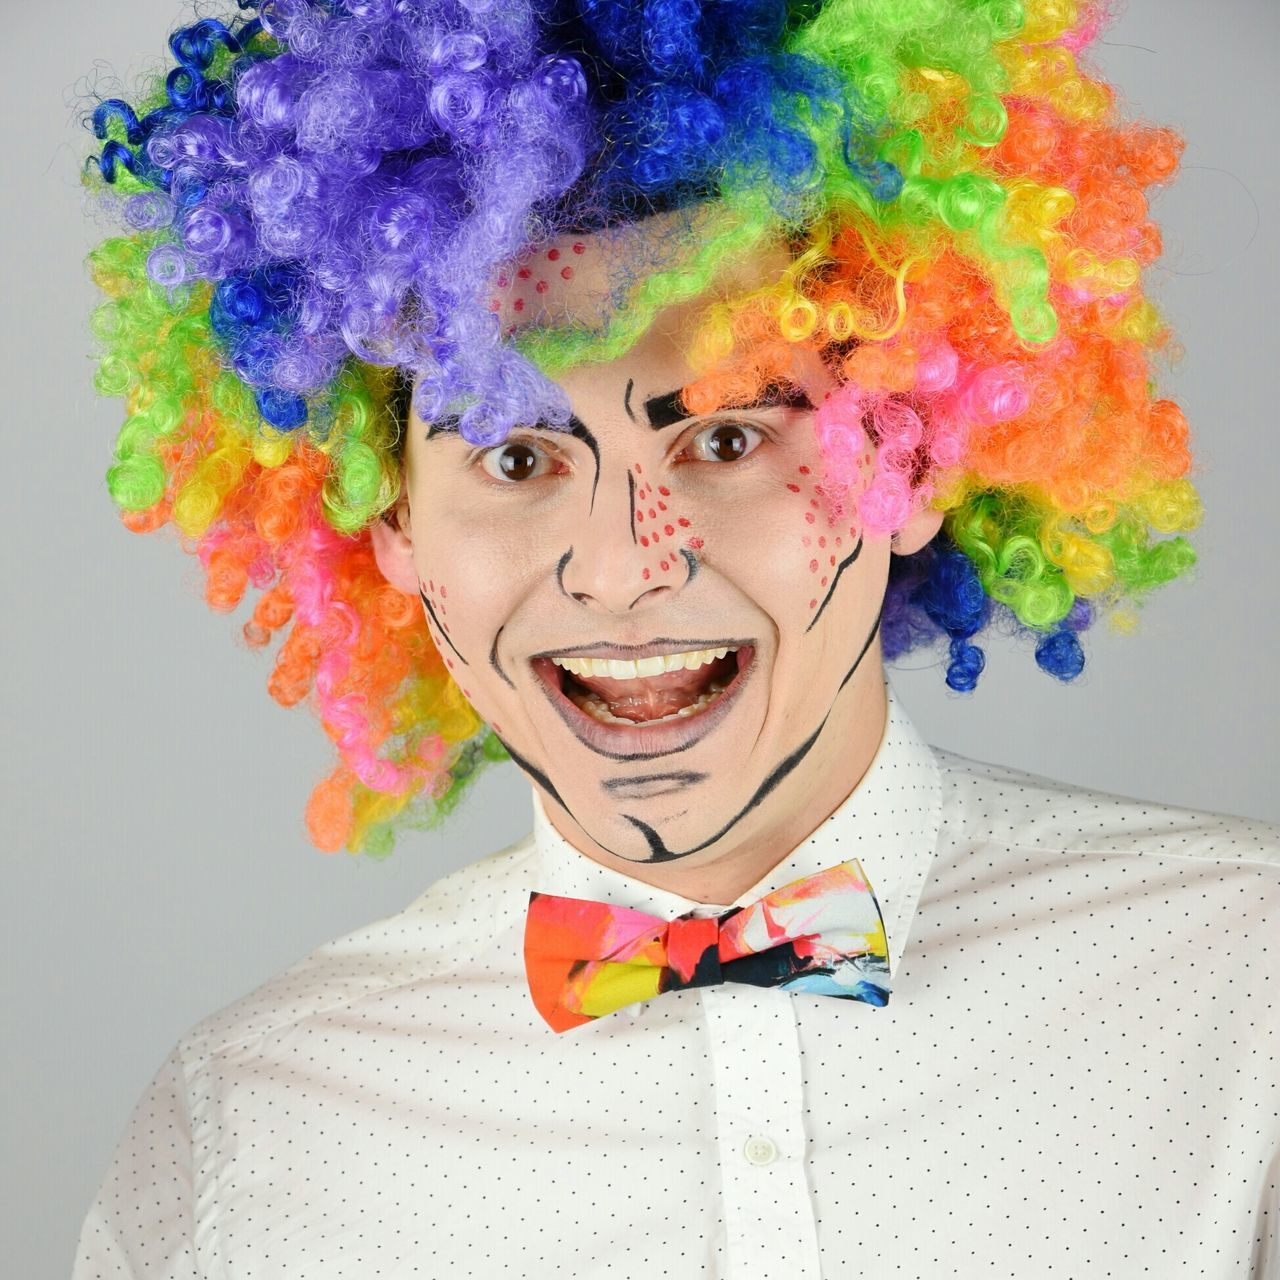 Beautiful stock photos of clown, 30-34 Years, Art And Craft, Arts Culture And Entertainment, Casual Clothing